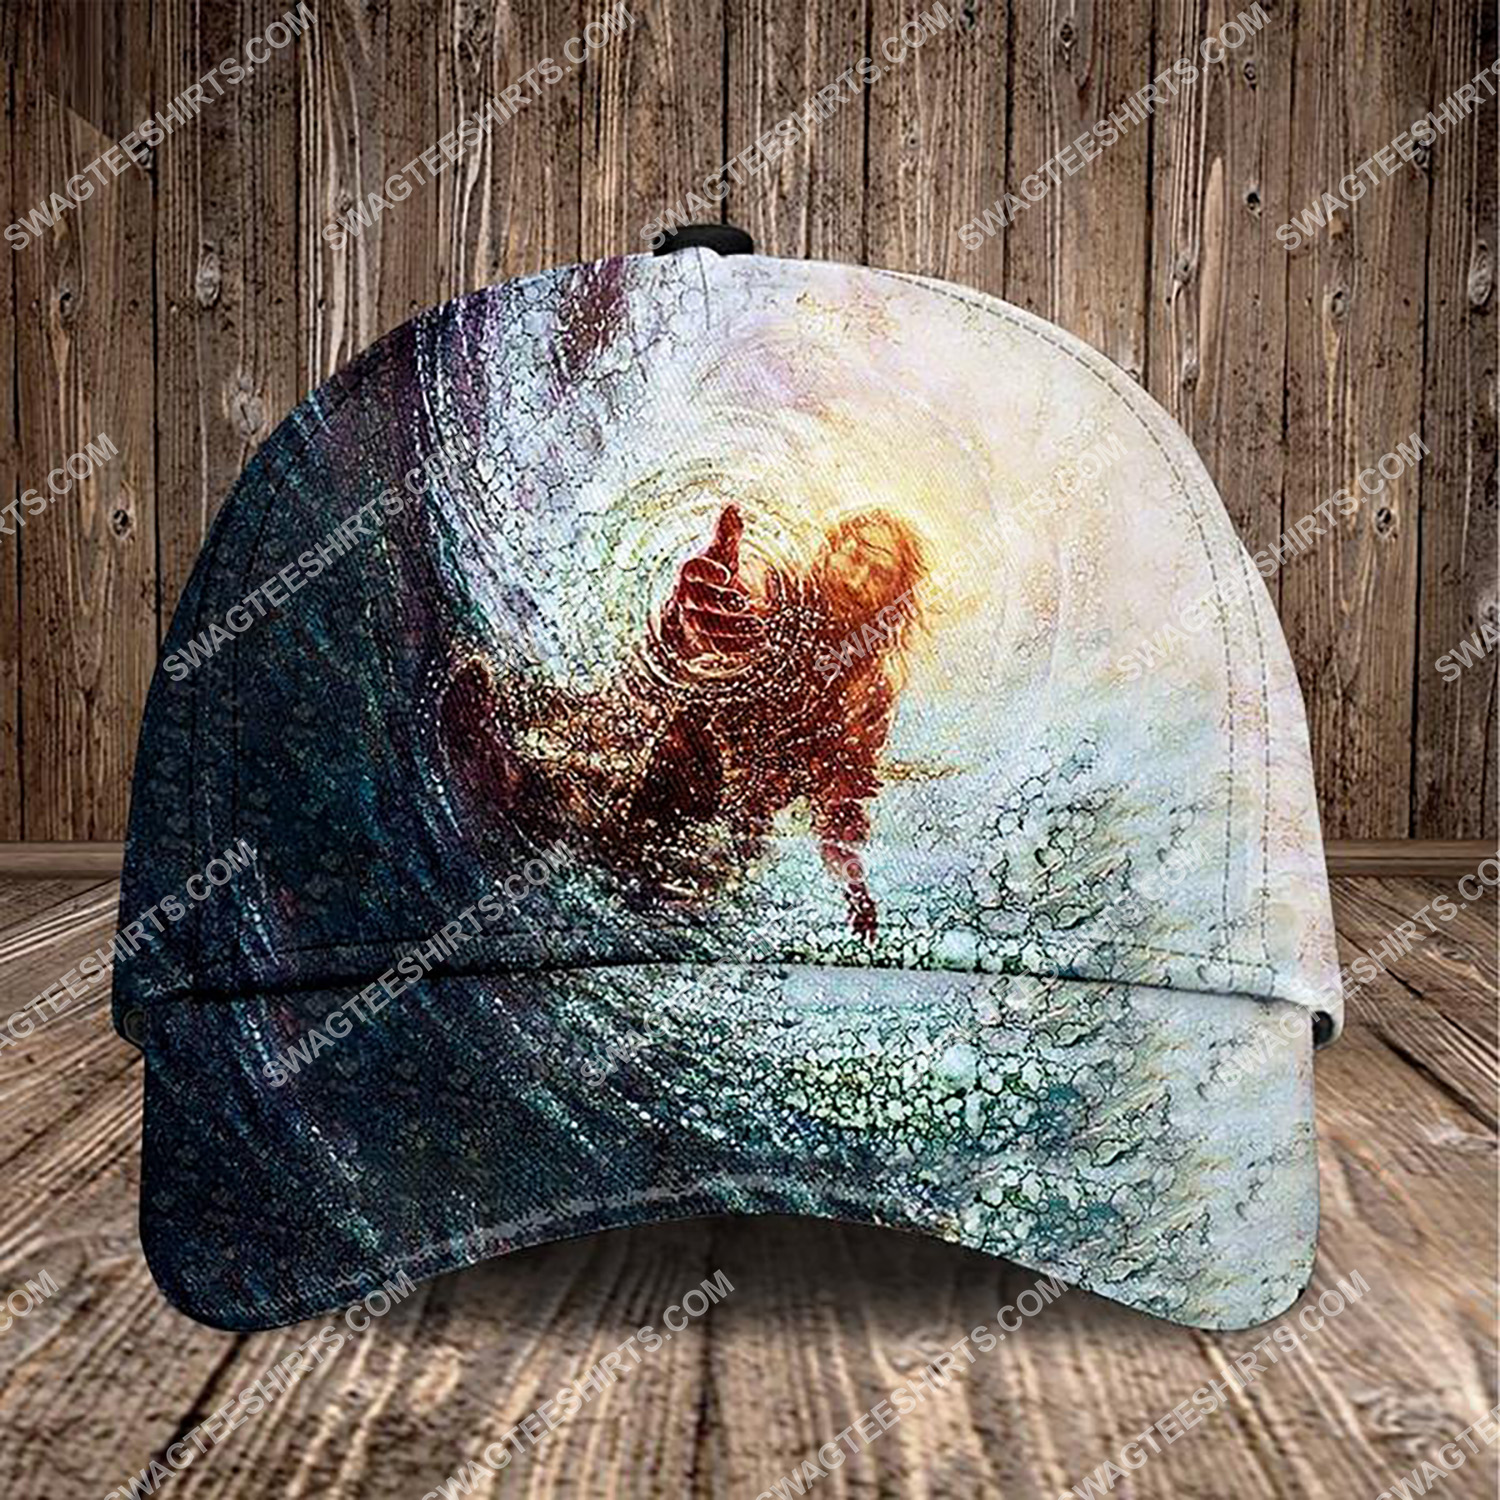 Jesus reaching into water all over printed classic cap 3 - Copy (2)